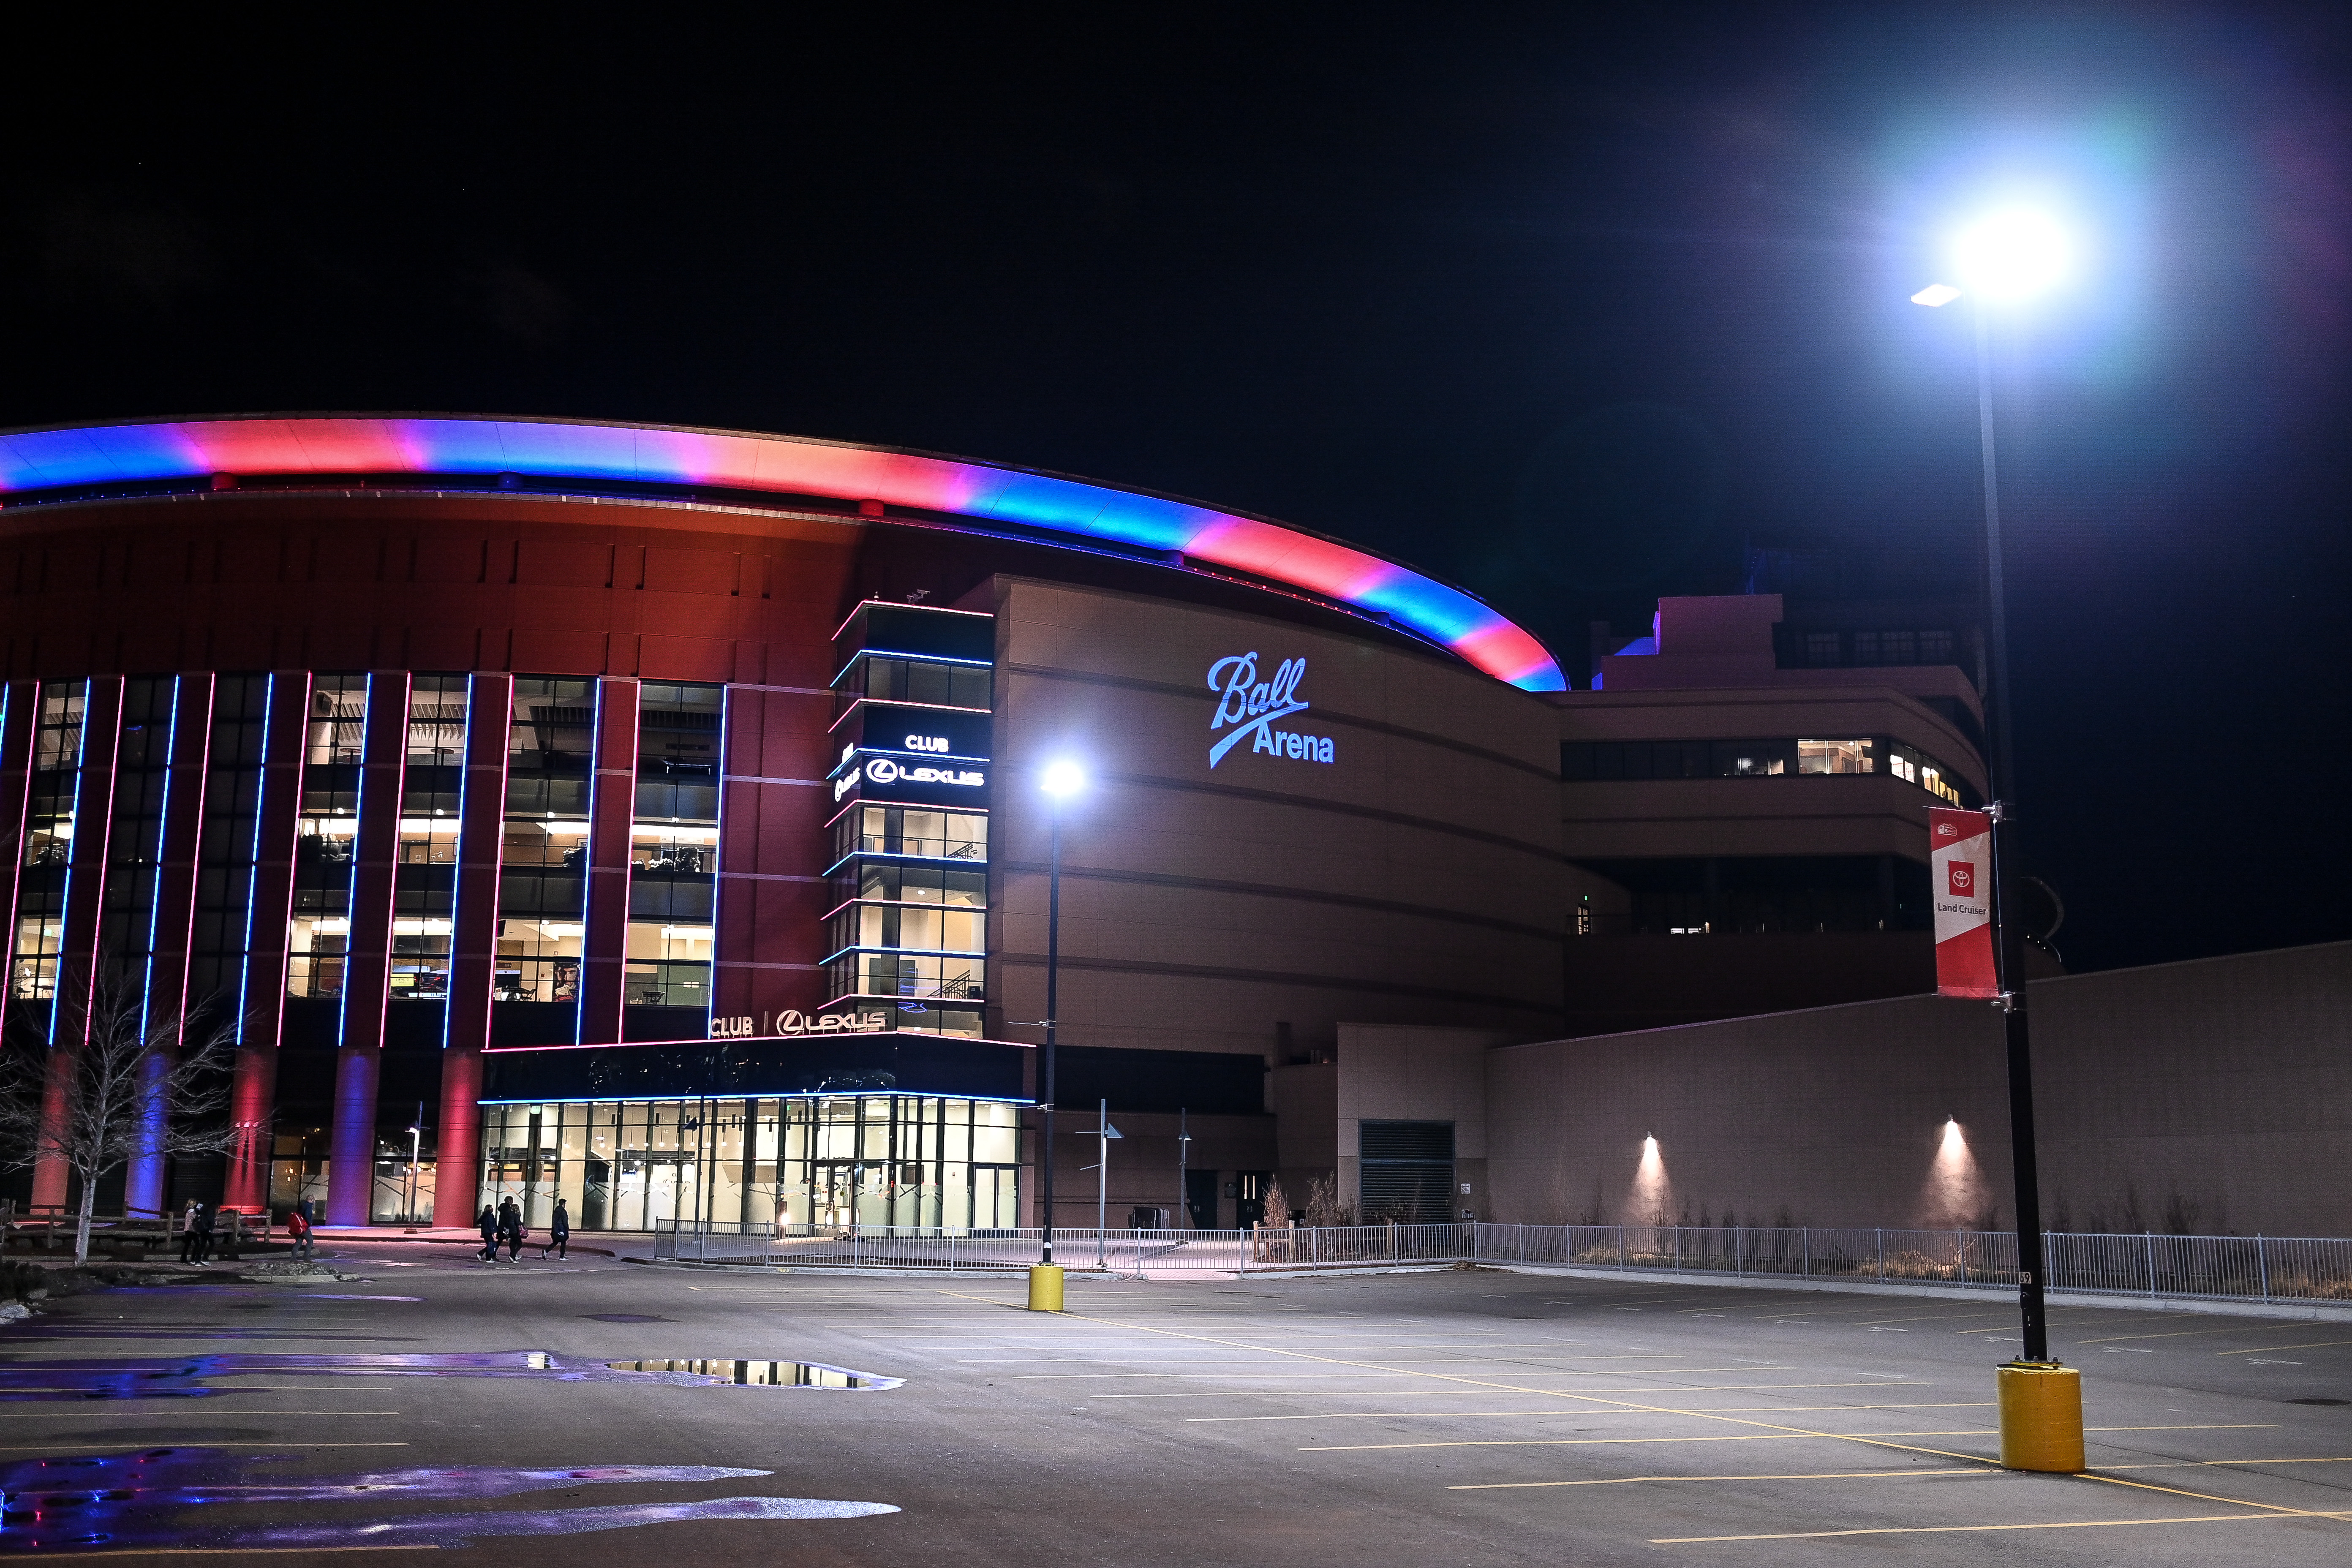 A view of Ball Arena before a game between the St. Louis Blues and the Colorado Avalanche in 2020